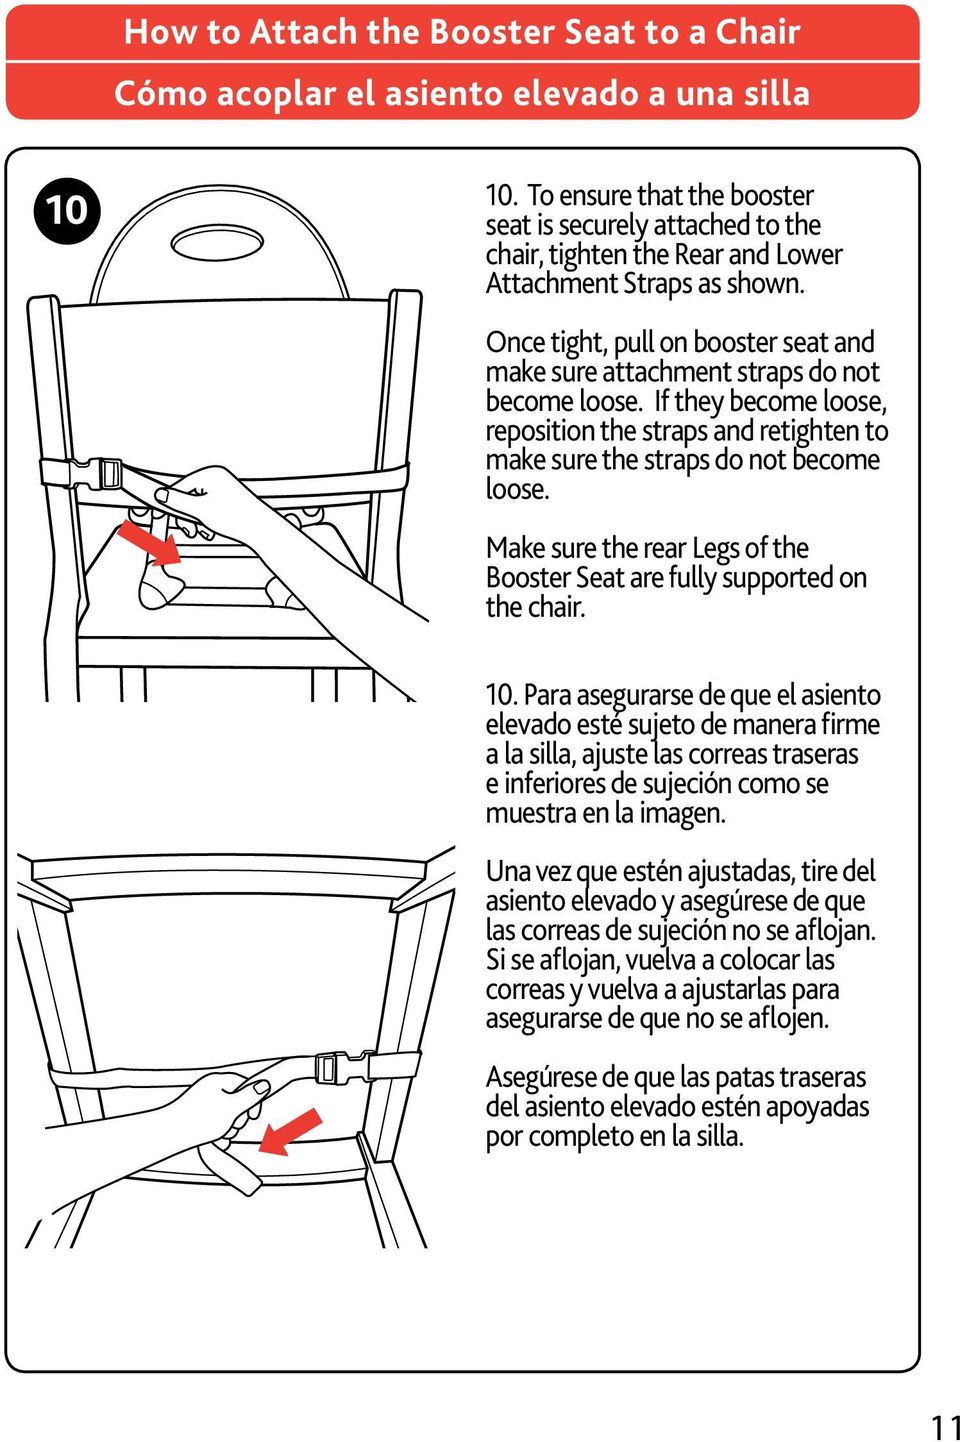 Once tight, pull on booster seat and make sure attachment straps do not become loose. If they become loose, reposition the straps and retighten to make sure the straps do not become loose.